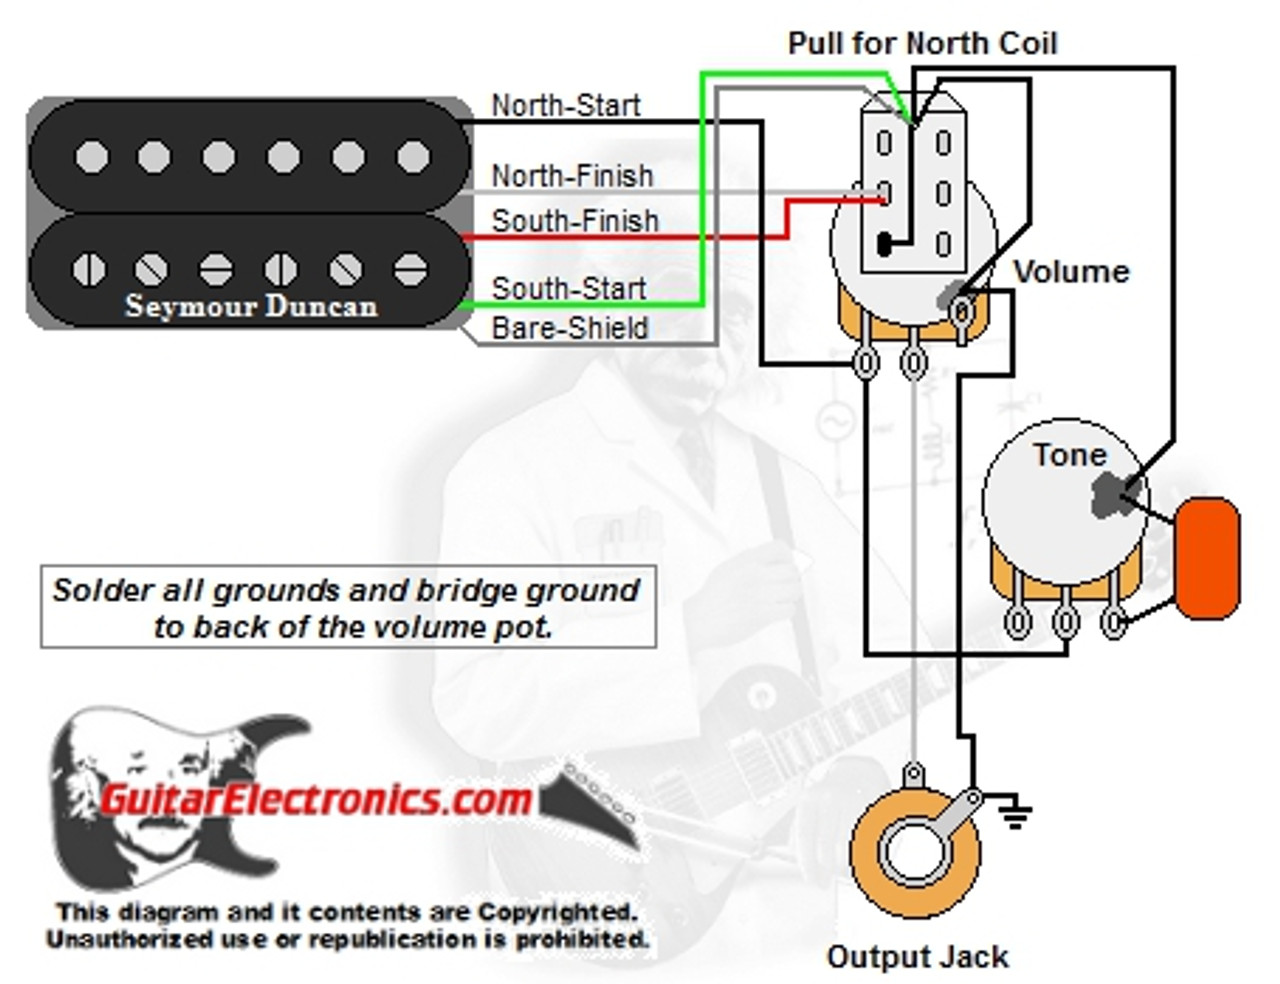 1 humbucker 1 volume 1tone pull for north single coil wiring diagram 1 humbucker 1 volume 1 tone pull for north single coil [ 1280 x 984 Pixel ]